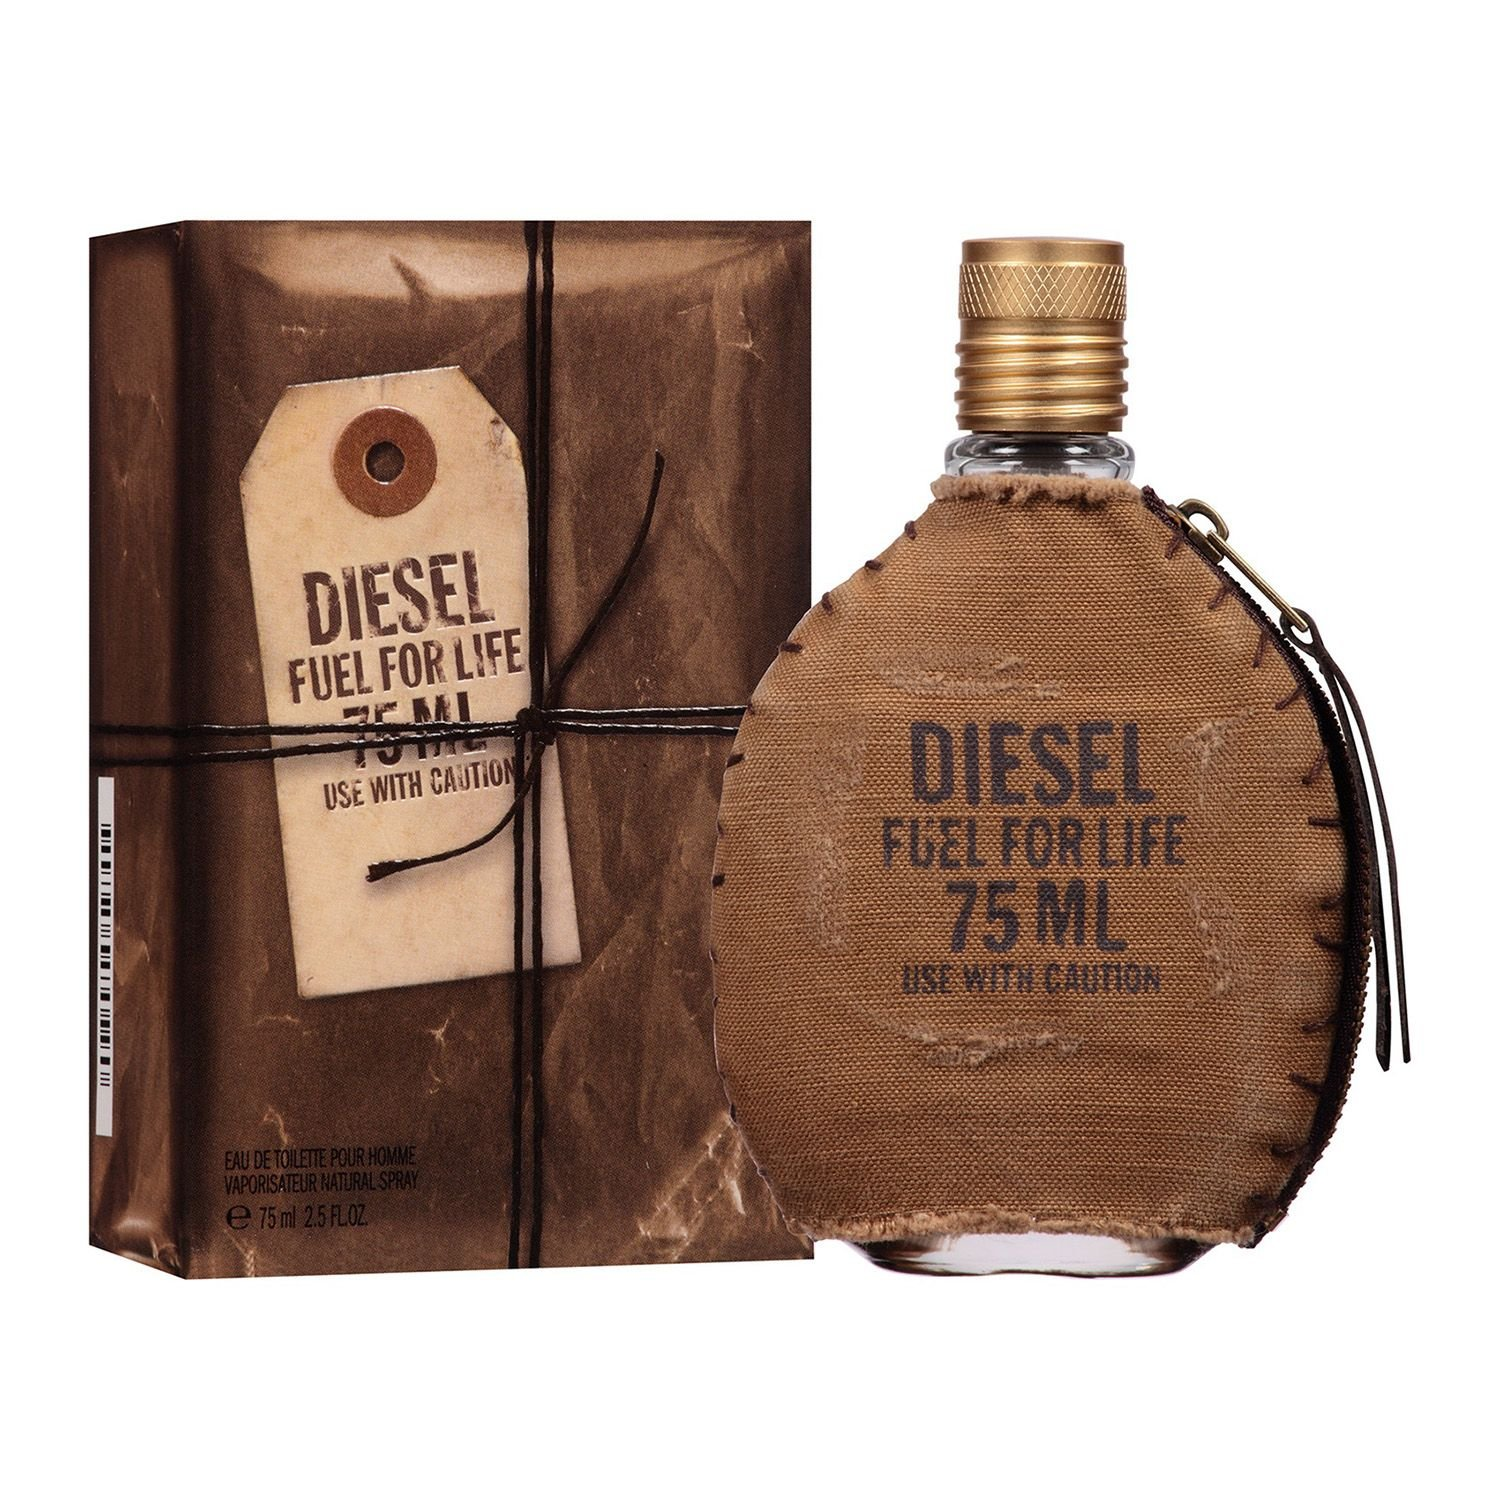 9790773870 Diesel Fuel for Life Cologne for Men 2.5 oz Eau De Toilette Spray 81JfXuJnk3L